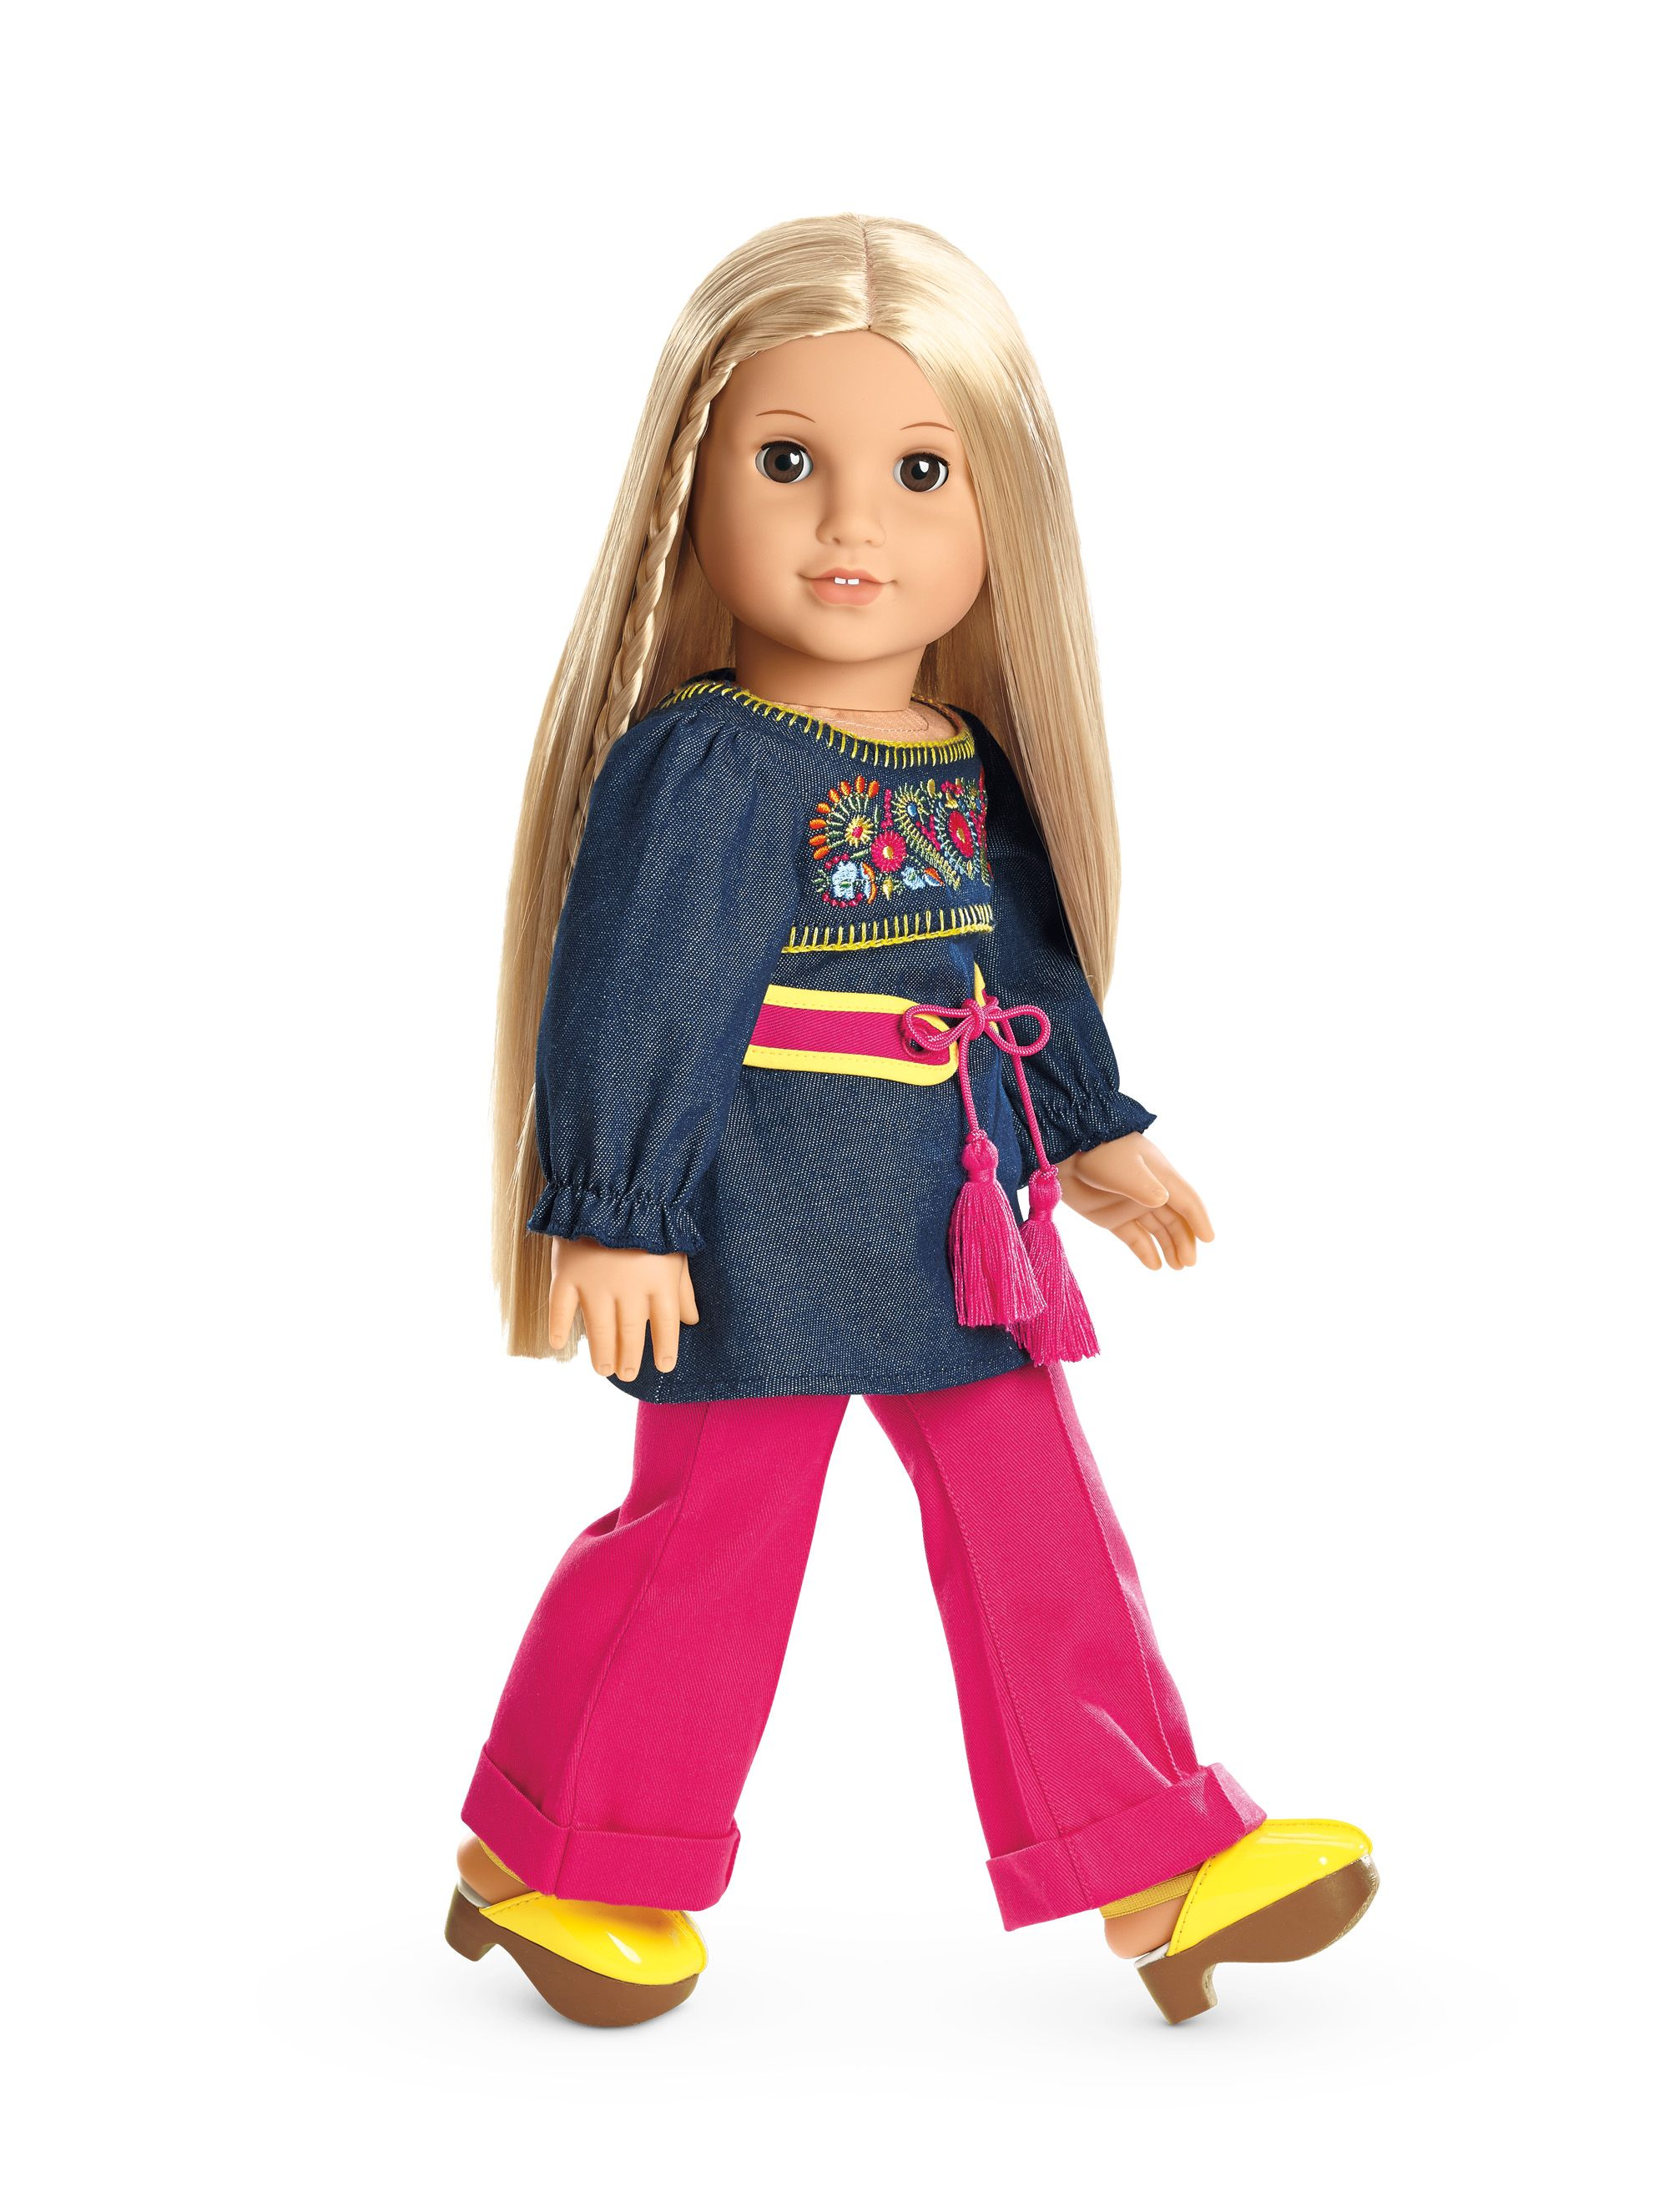 c551ecf9461 Julie's Tunic Outfit for 18-inch Dolls | Toys | American girl julie ...